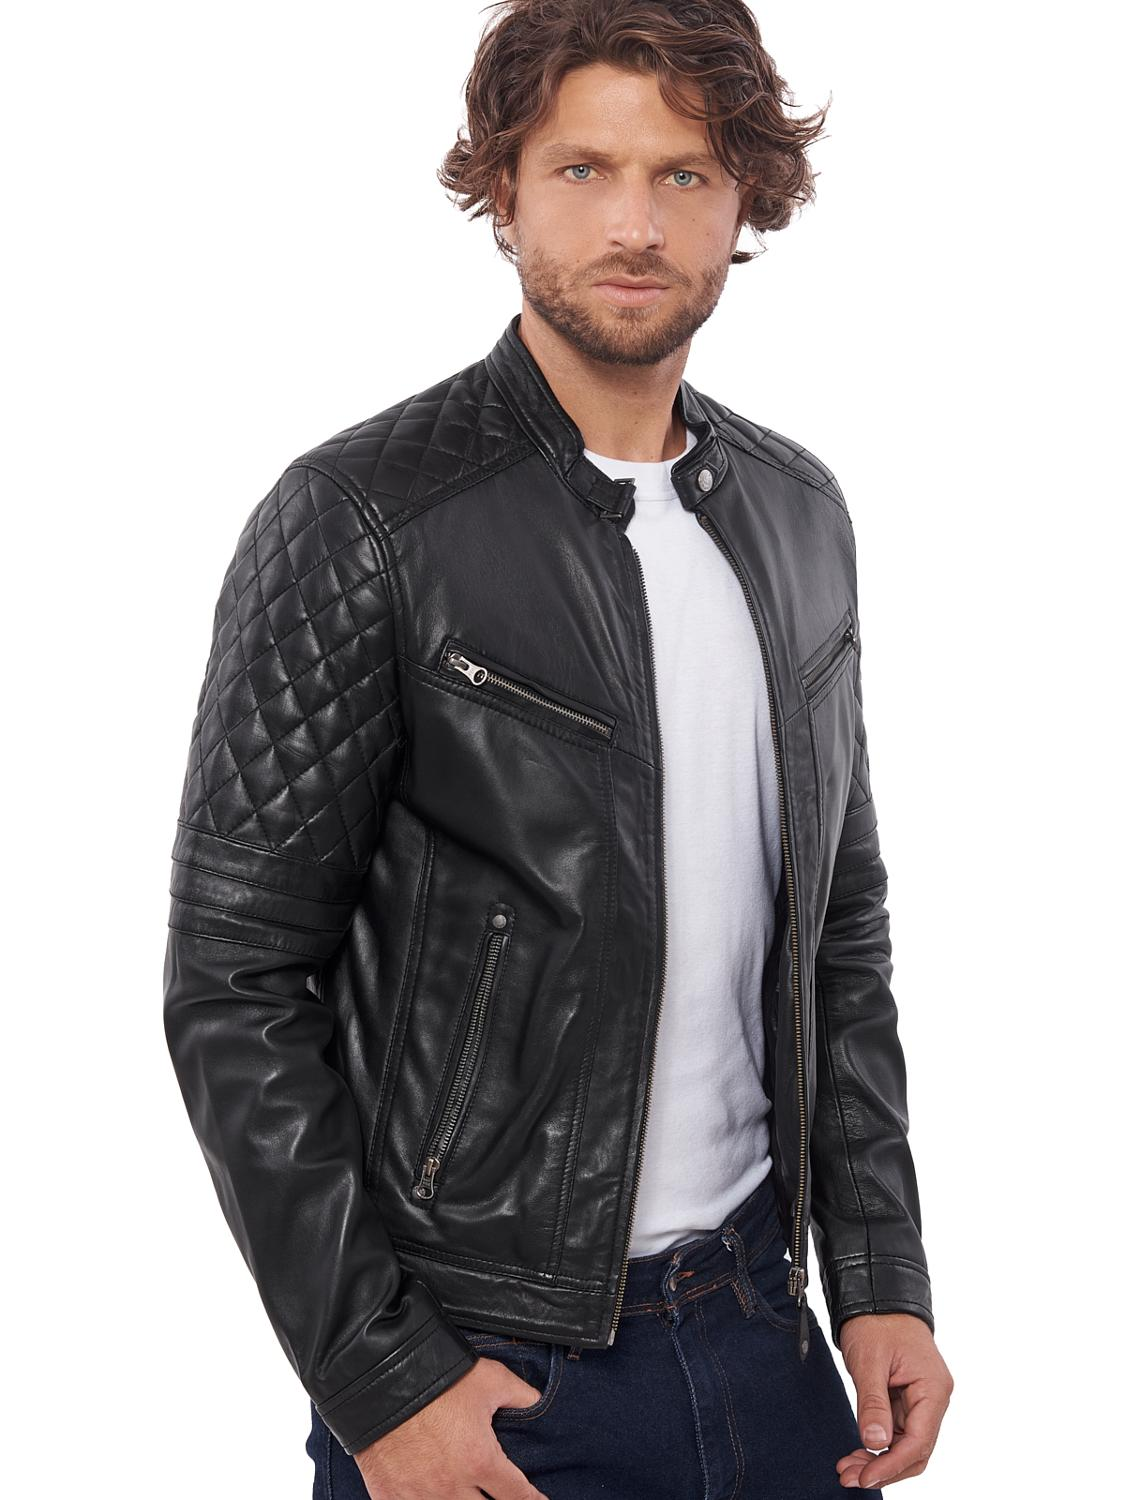 MEN/'S GENUINE COWHIDE PREMIUM LEATHER MOTORCYCLE BIKER TOP LEATHER JACKET BLACK